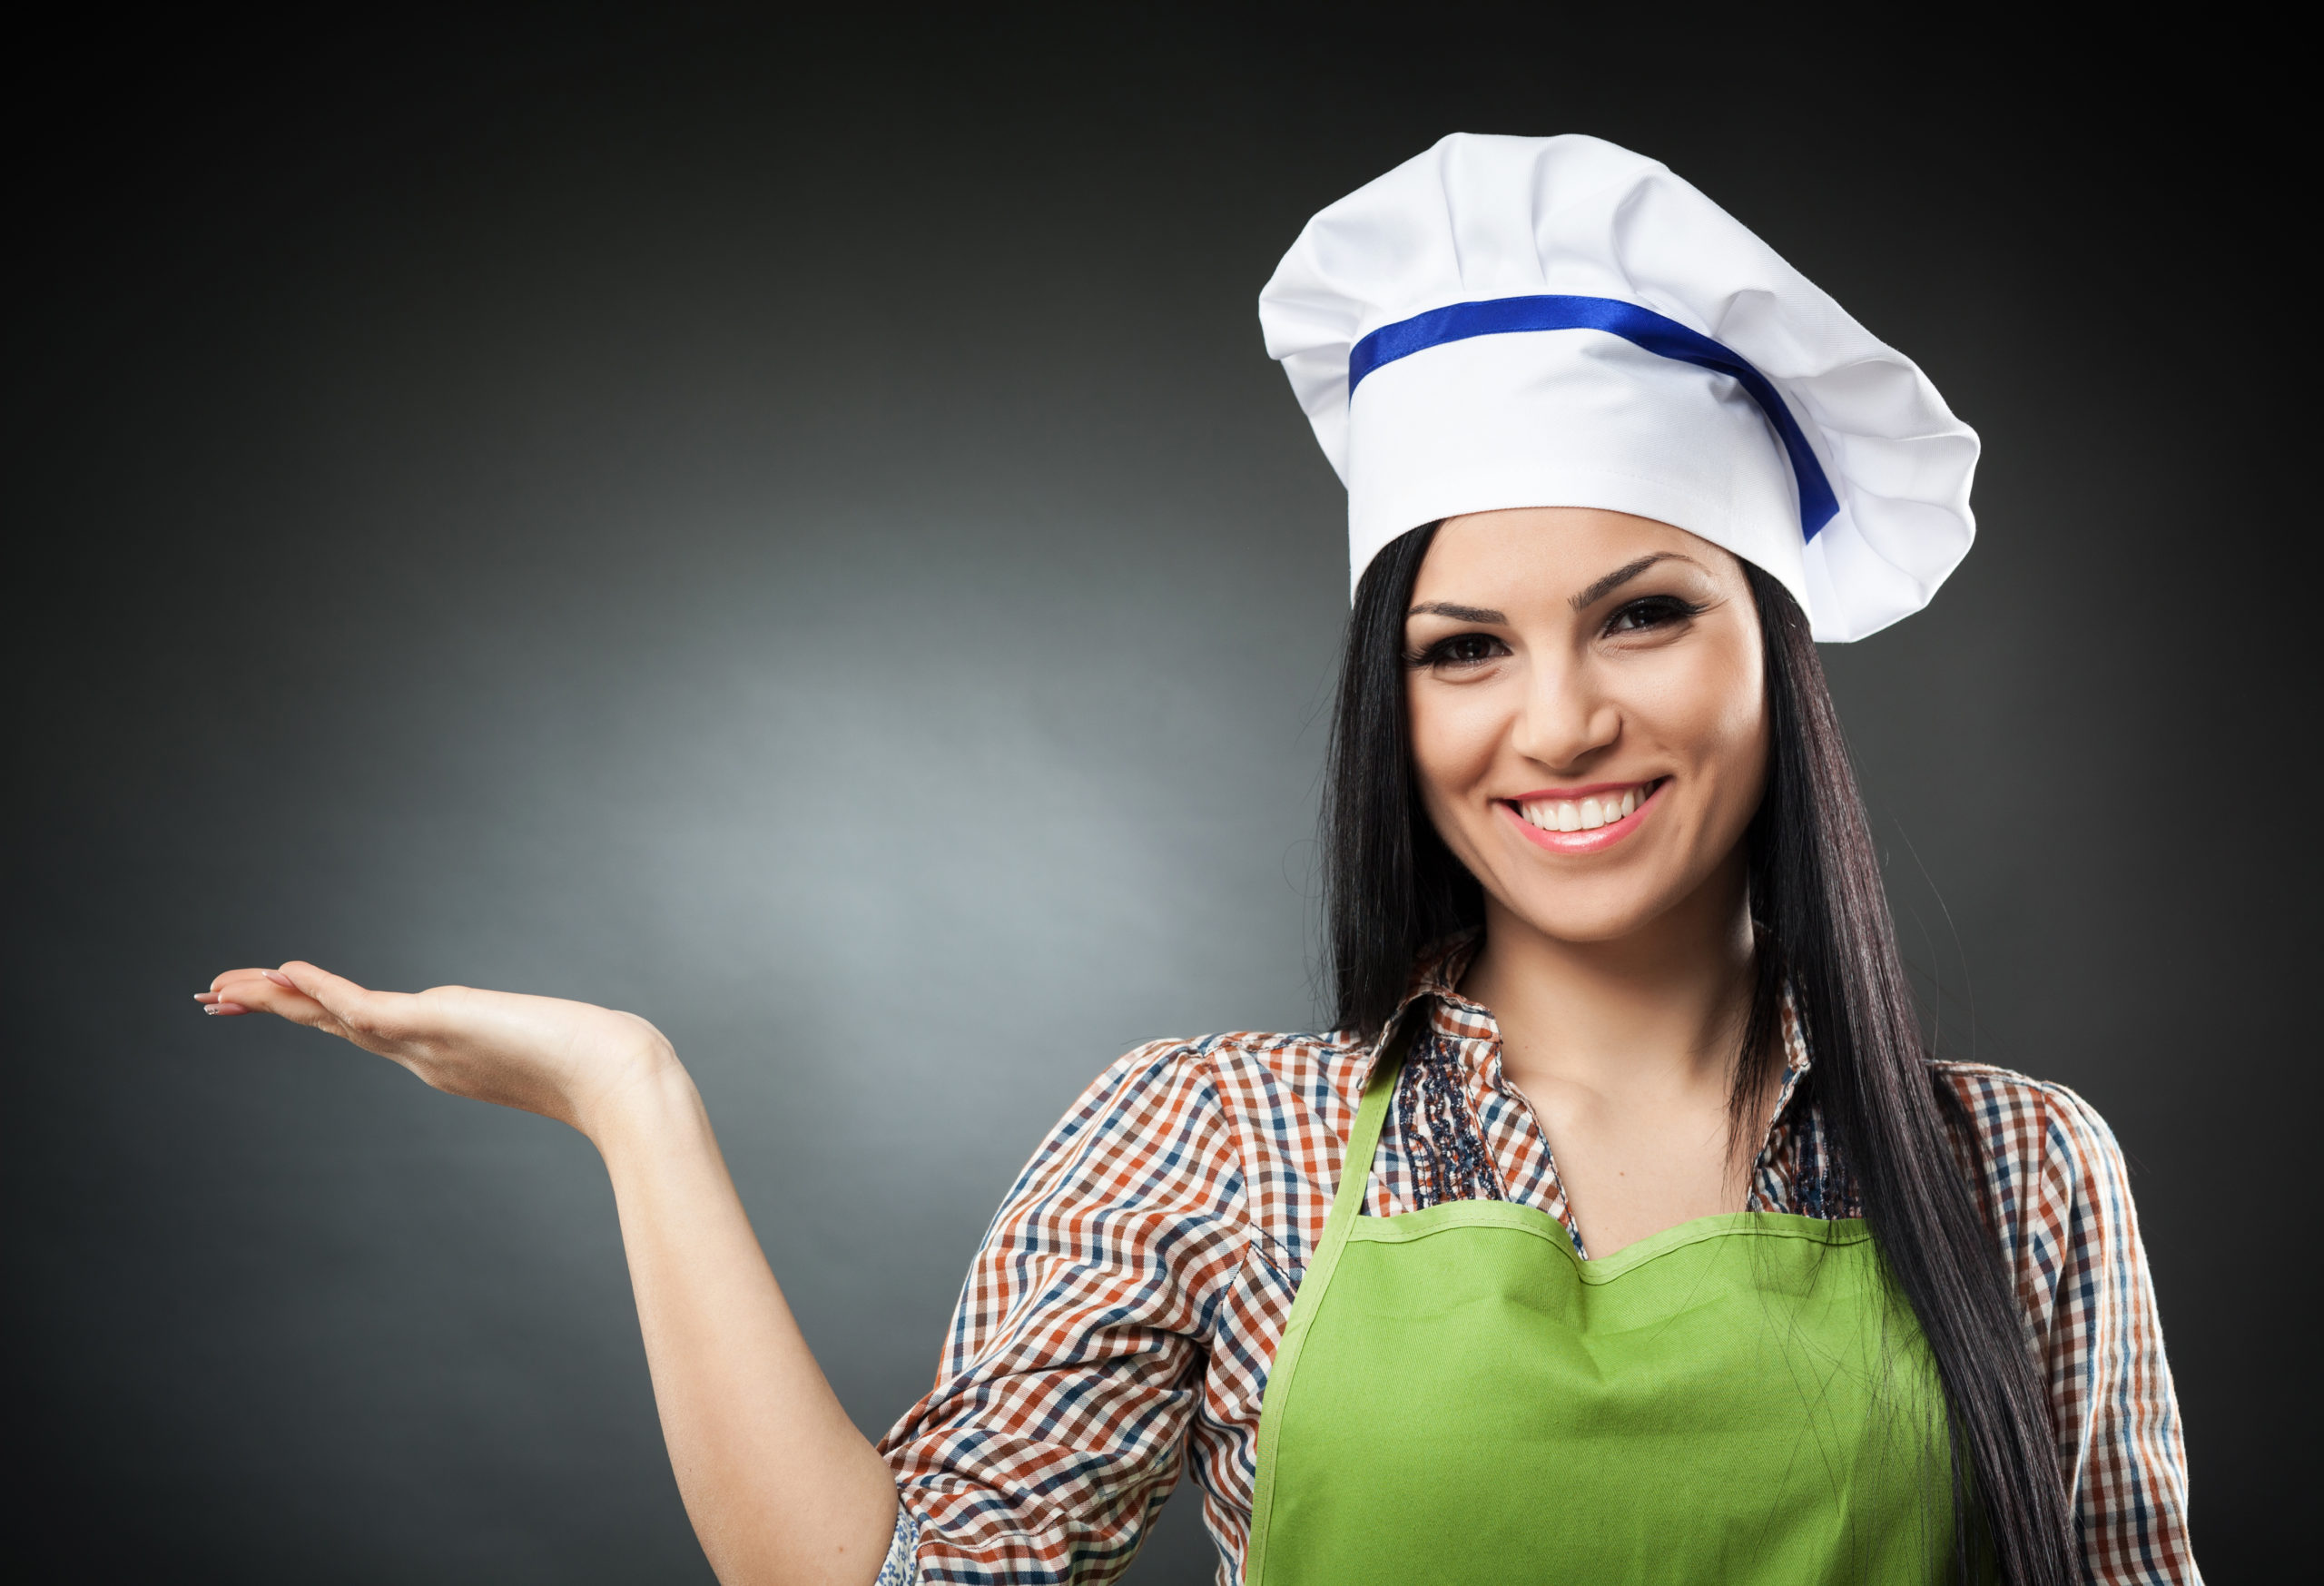 Cooking With CBD Oil: Tips, Tricks, And Recipes To Get You Started